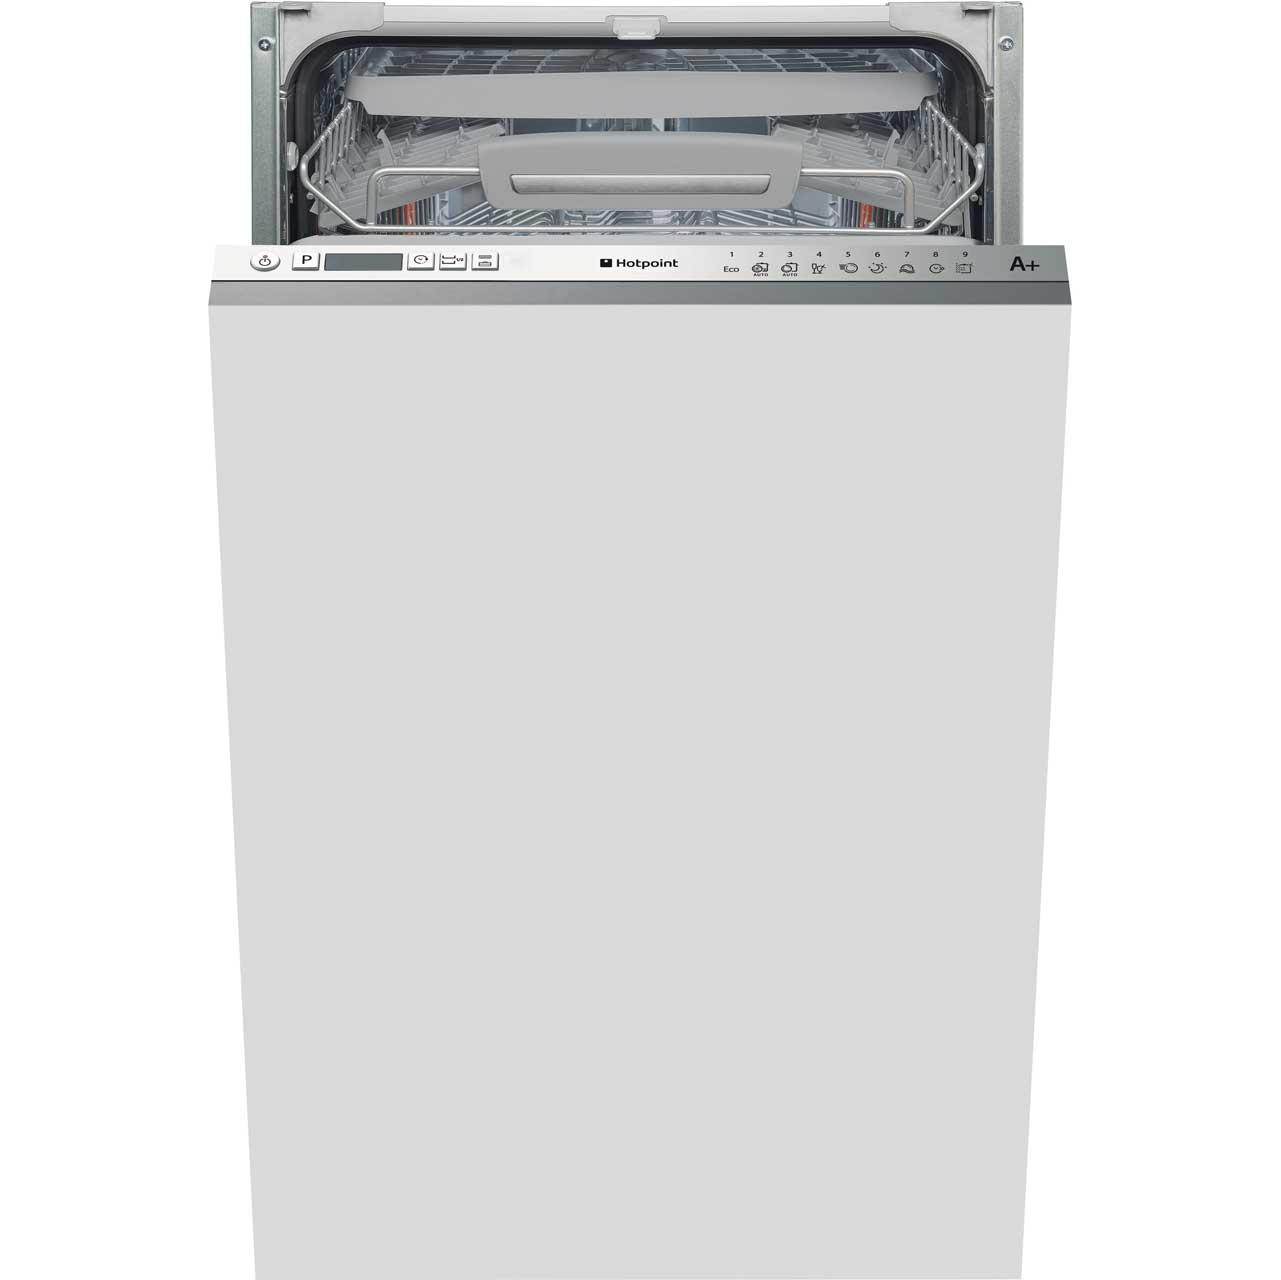 Hotpoint LSTF9H123CL Integrated Slimline Dishwasher in Stainless Steel